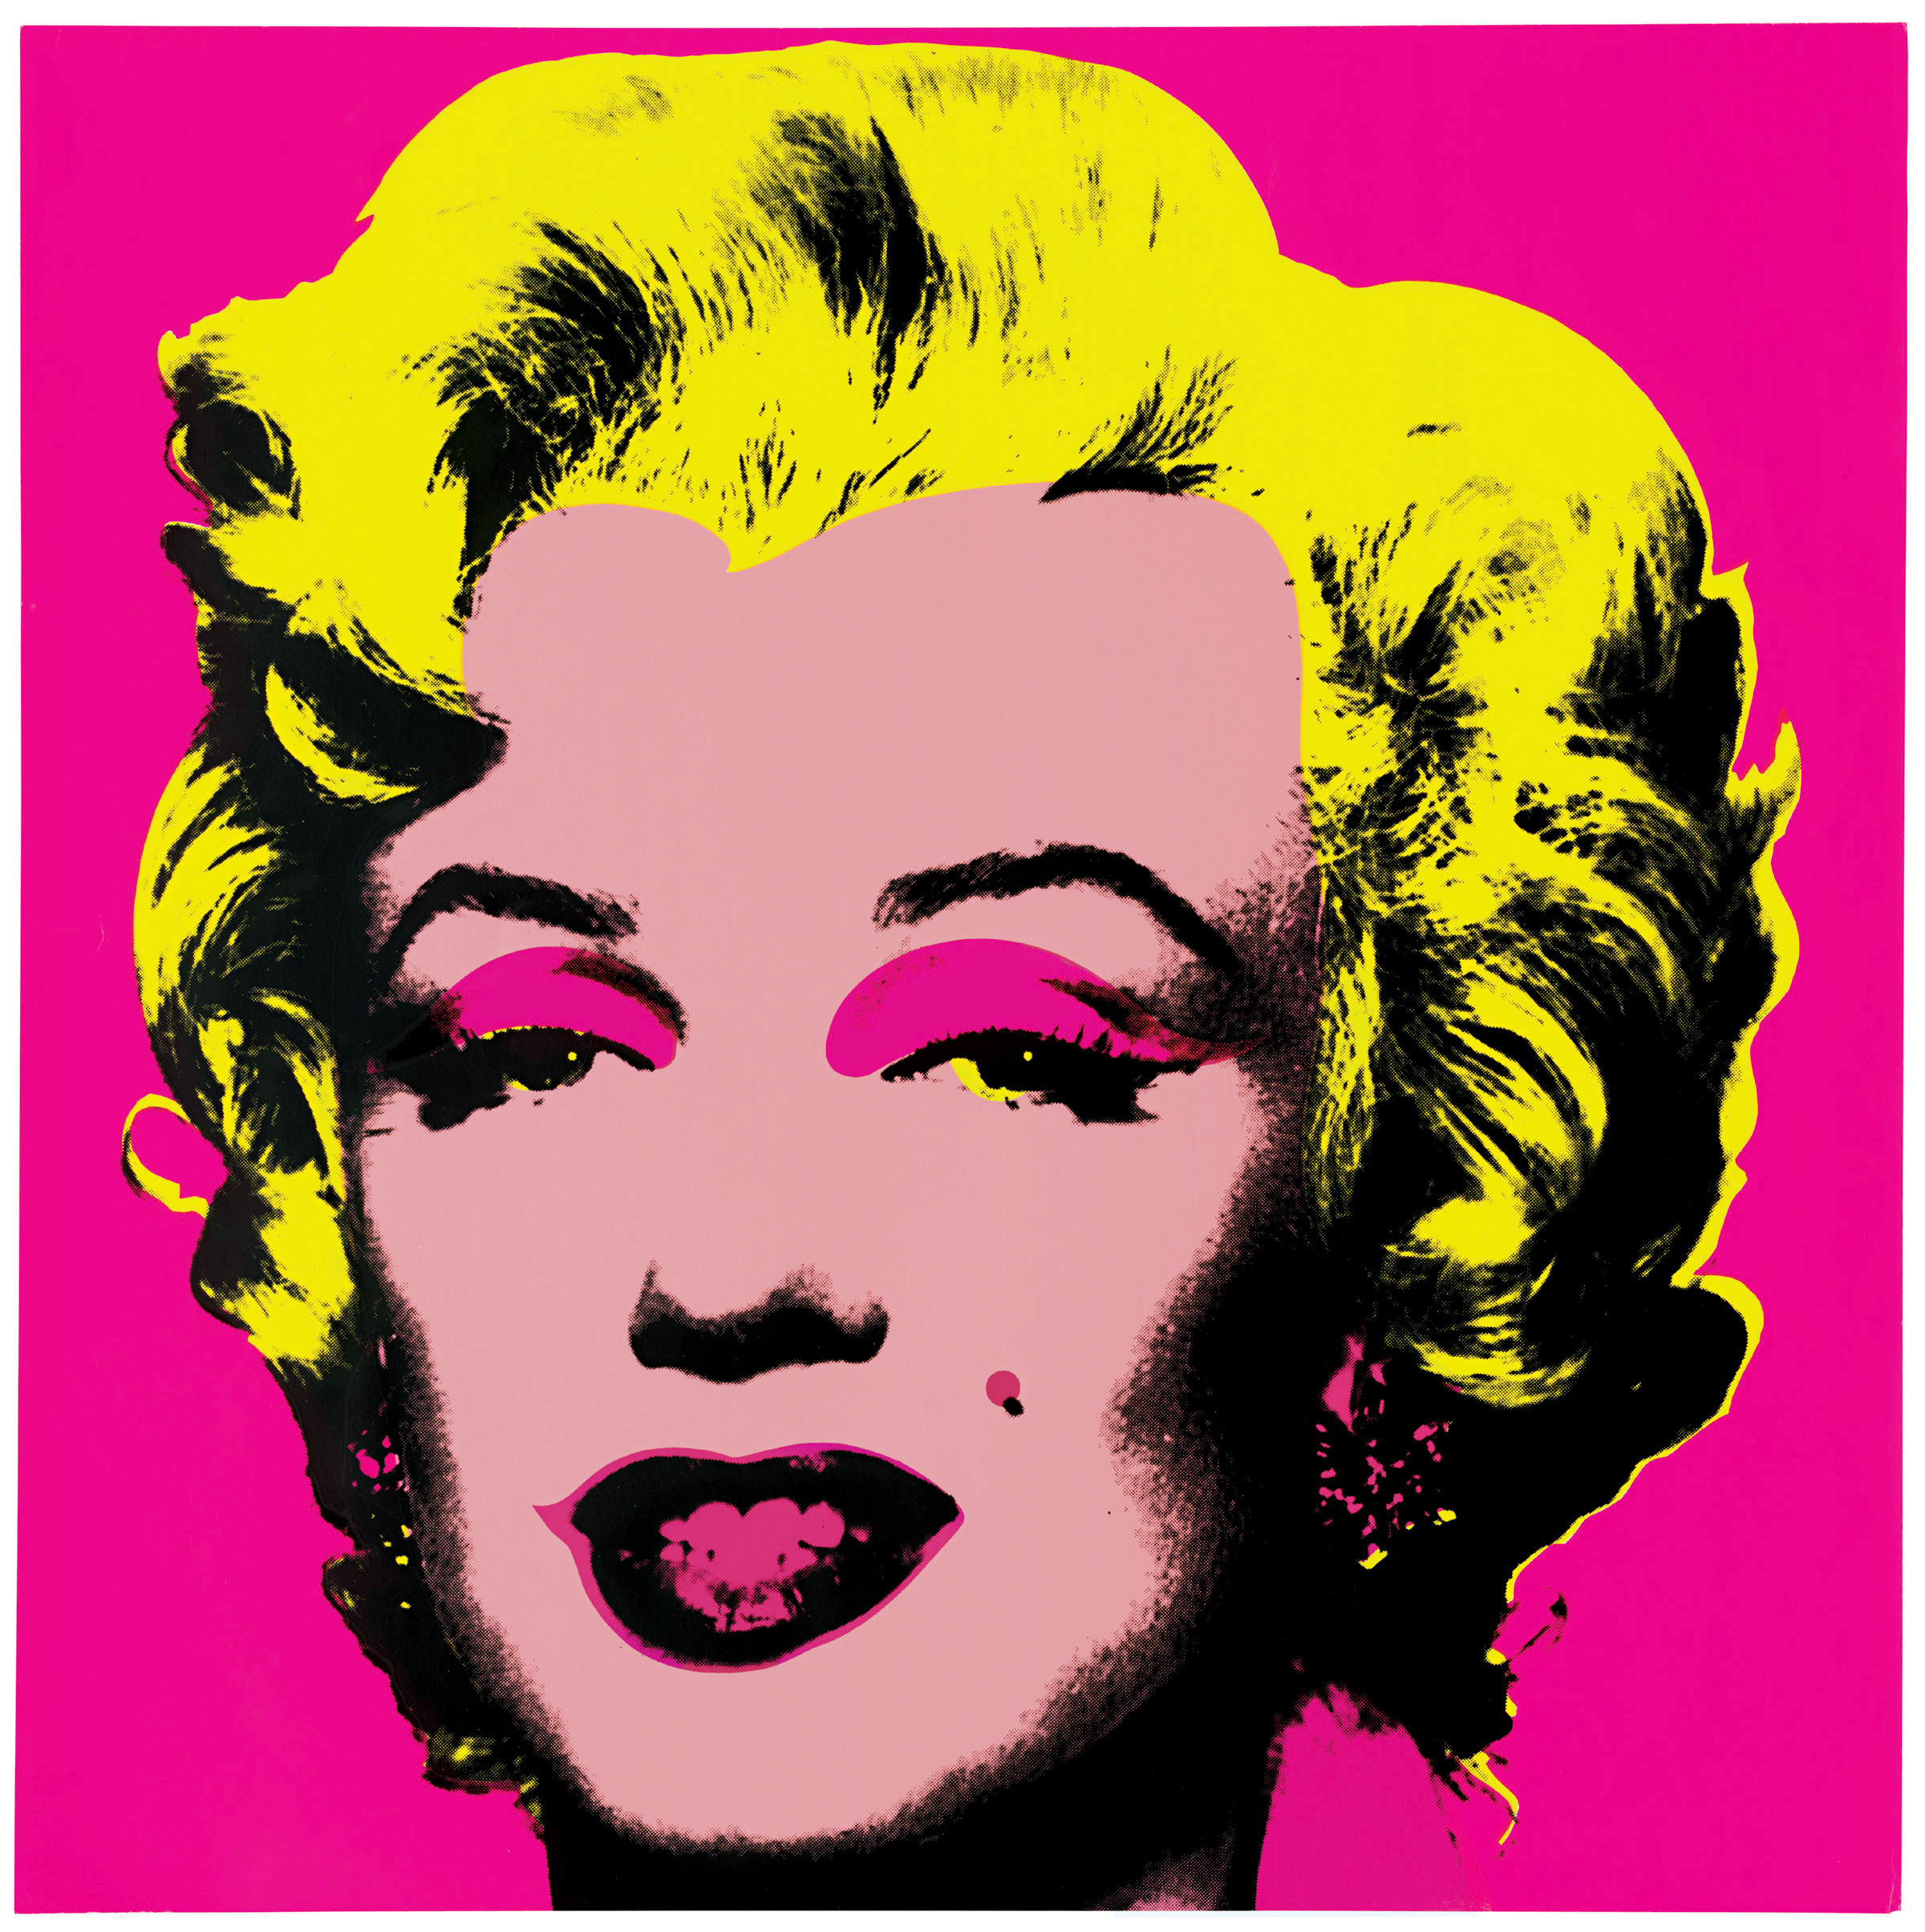 andy warhol wallpaper marilyn monroe art print wallpaper pictures. Black Bedroom Furniture Sets. Home Design Ideas